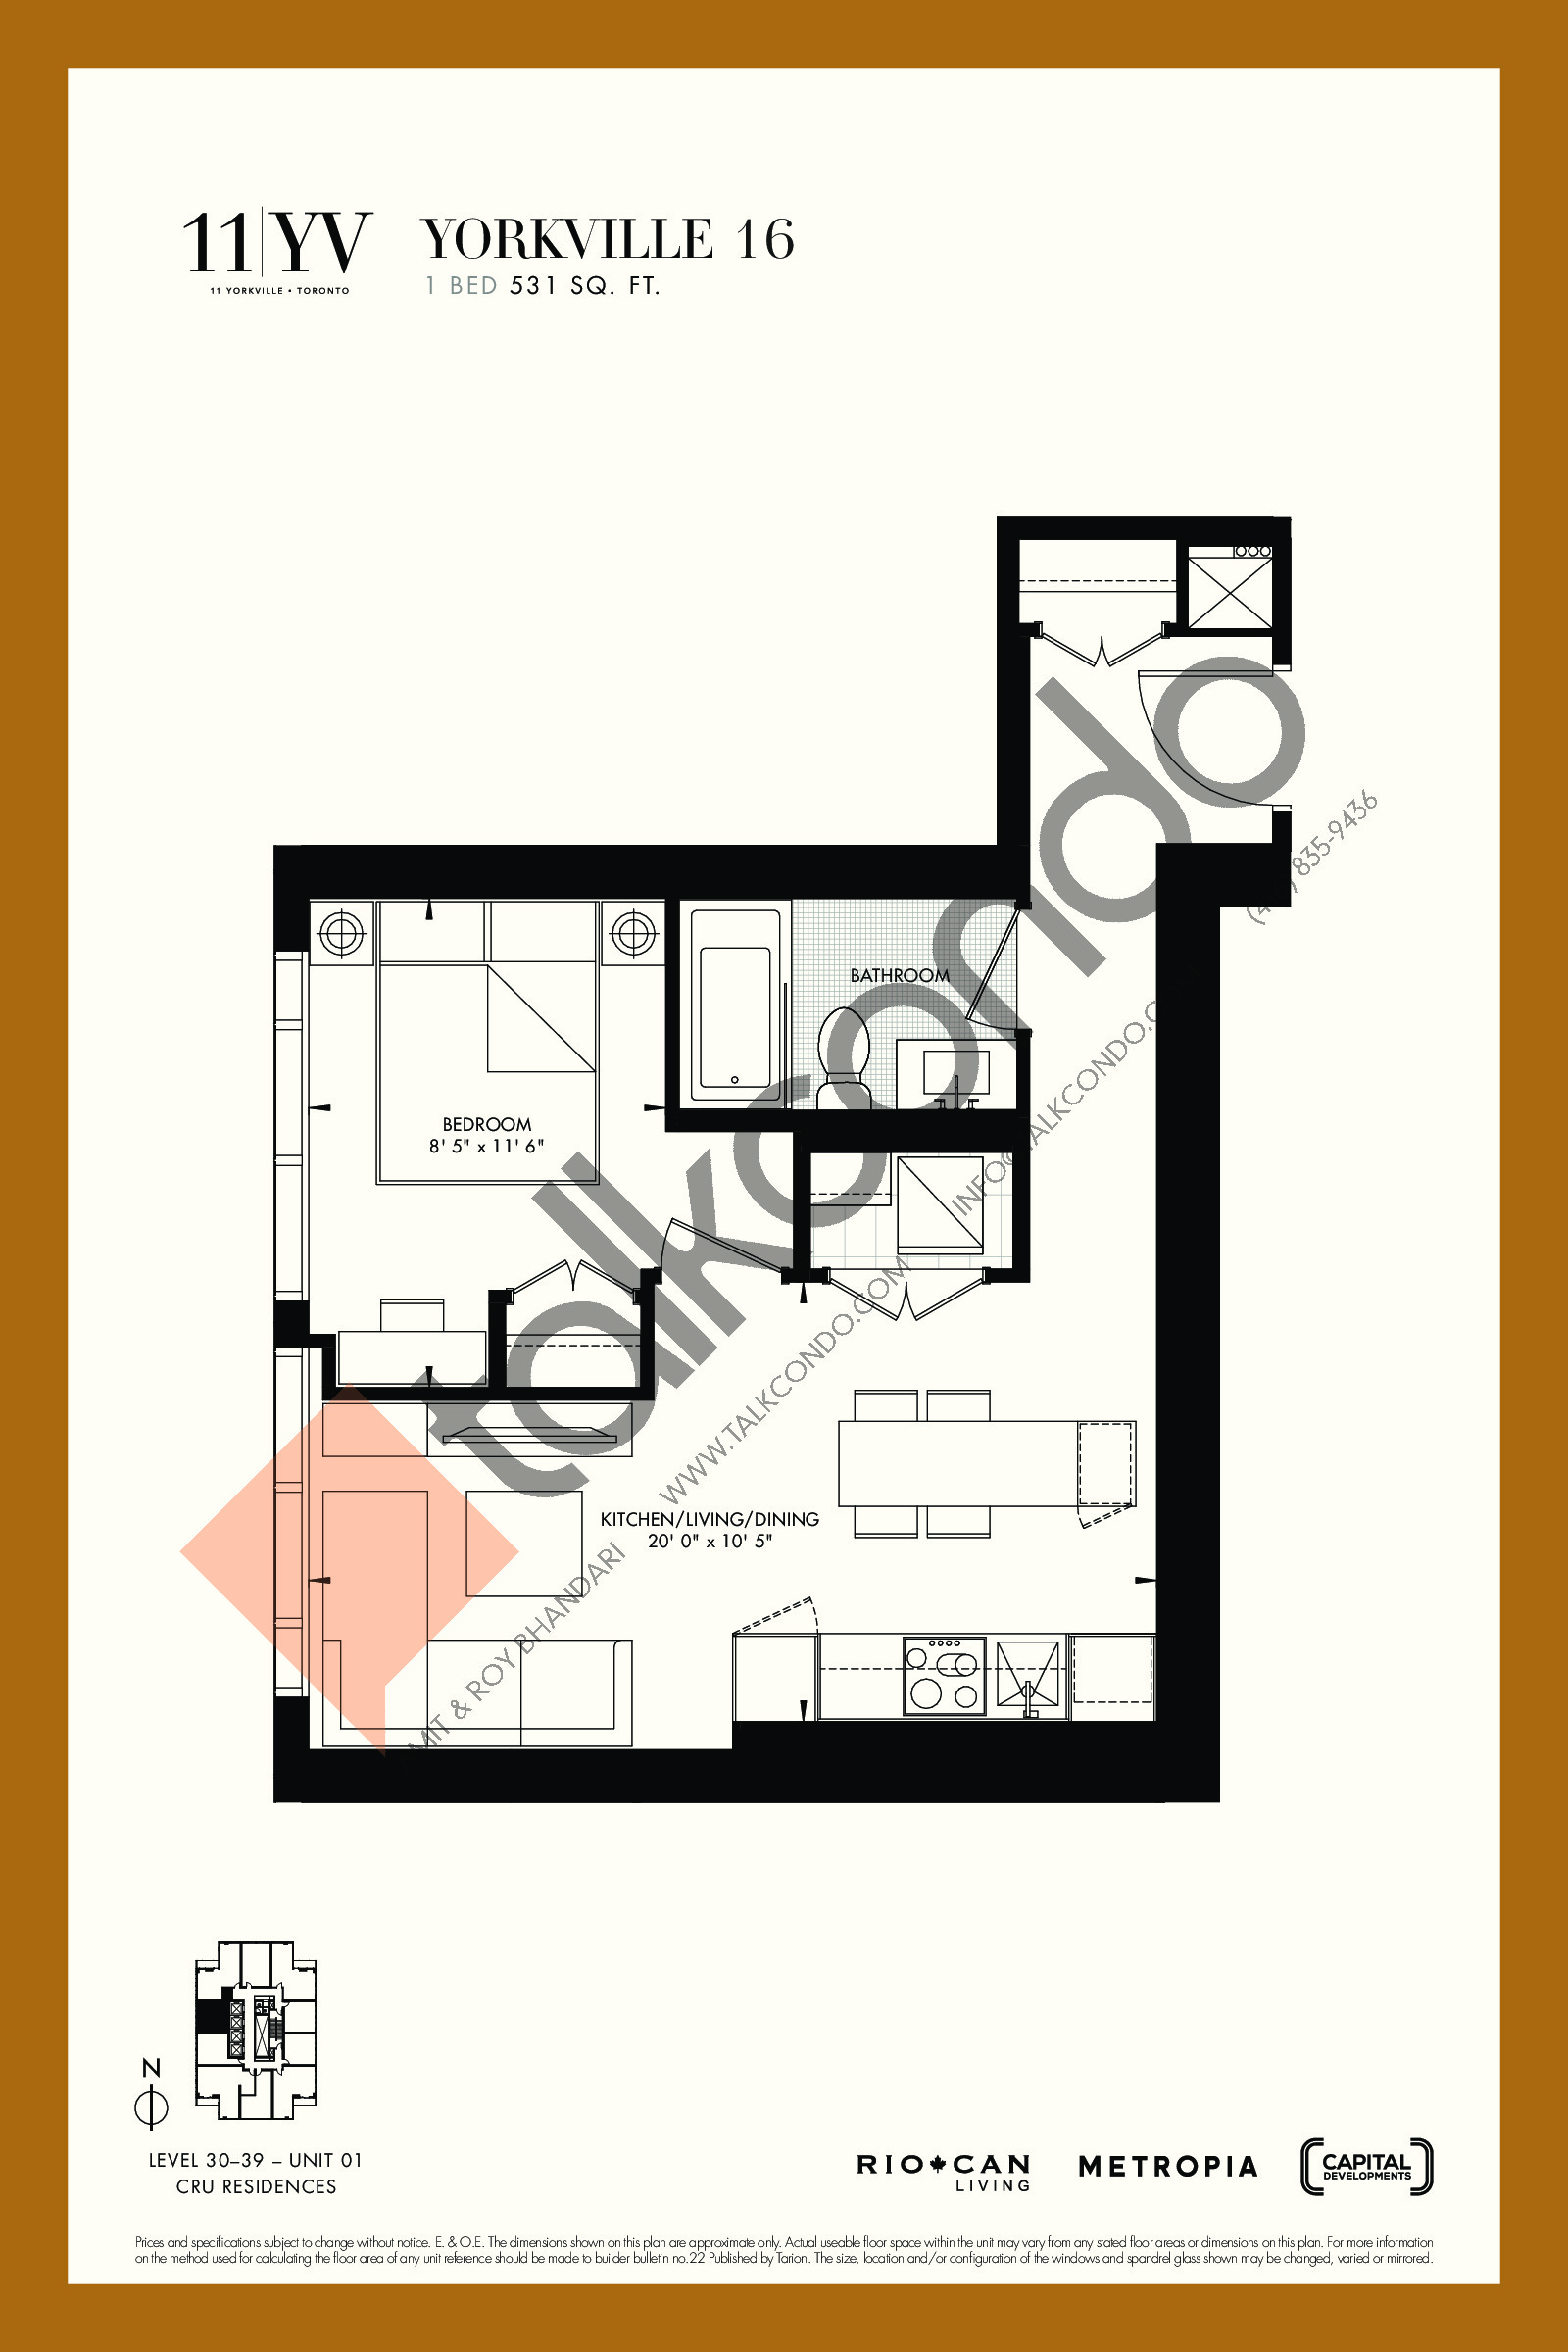 Yorkville 16 Floor Plan at 11YV Condos - 531 sq.ft